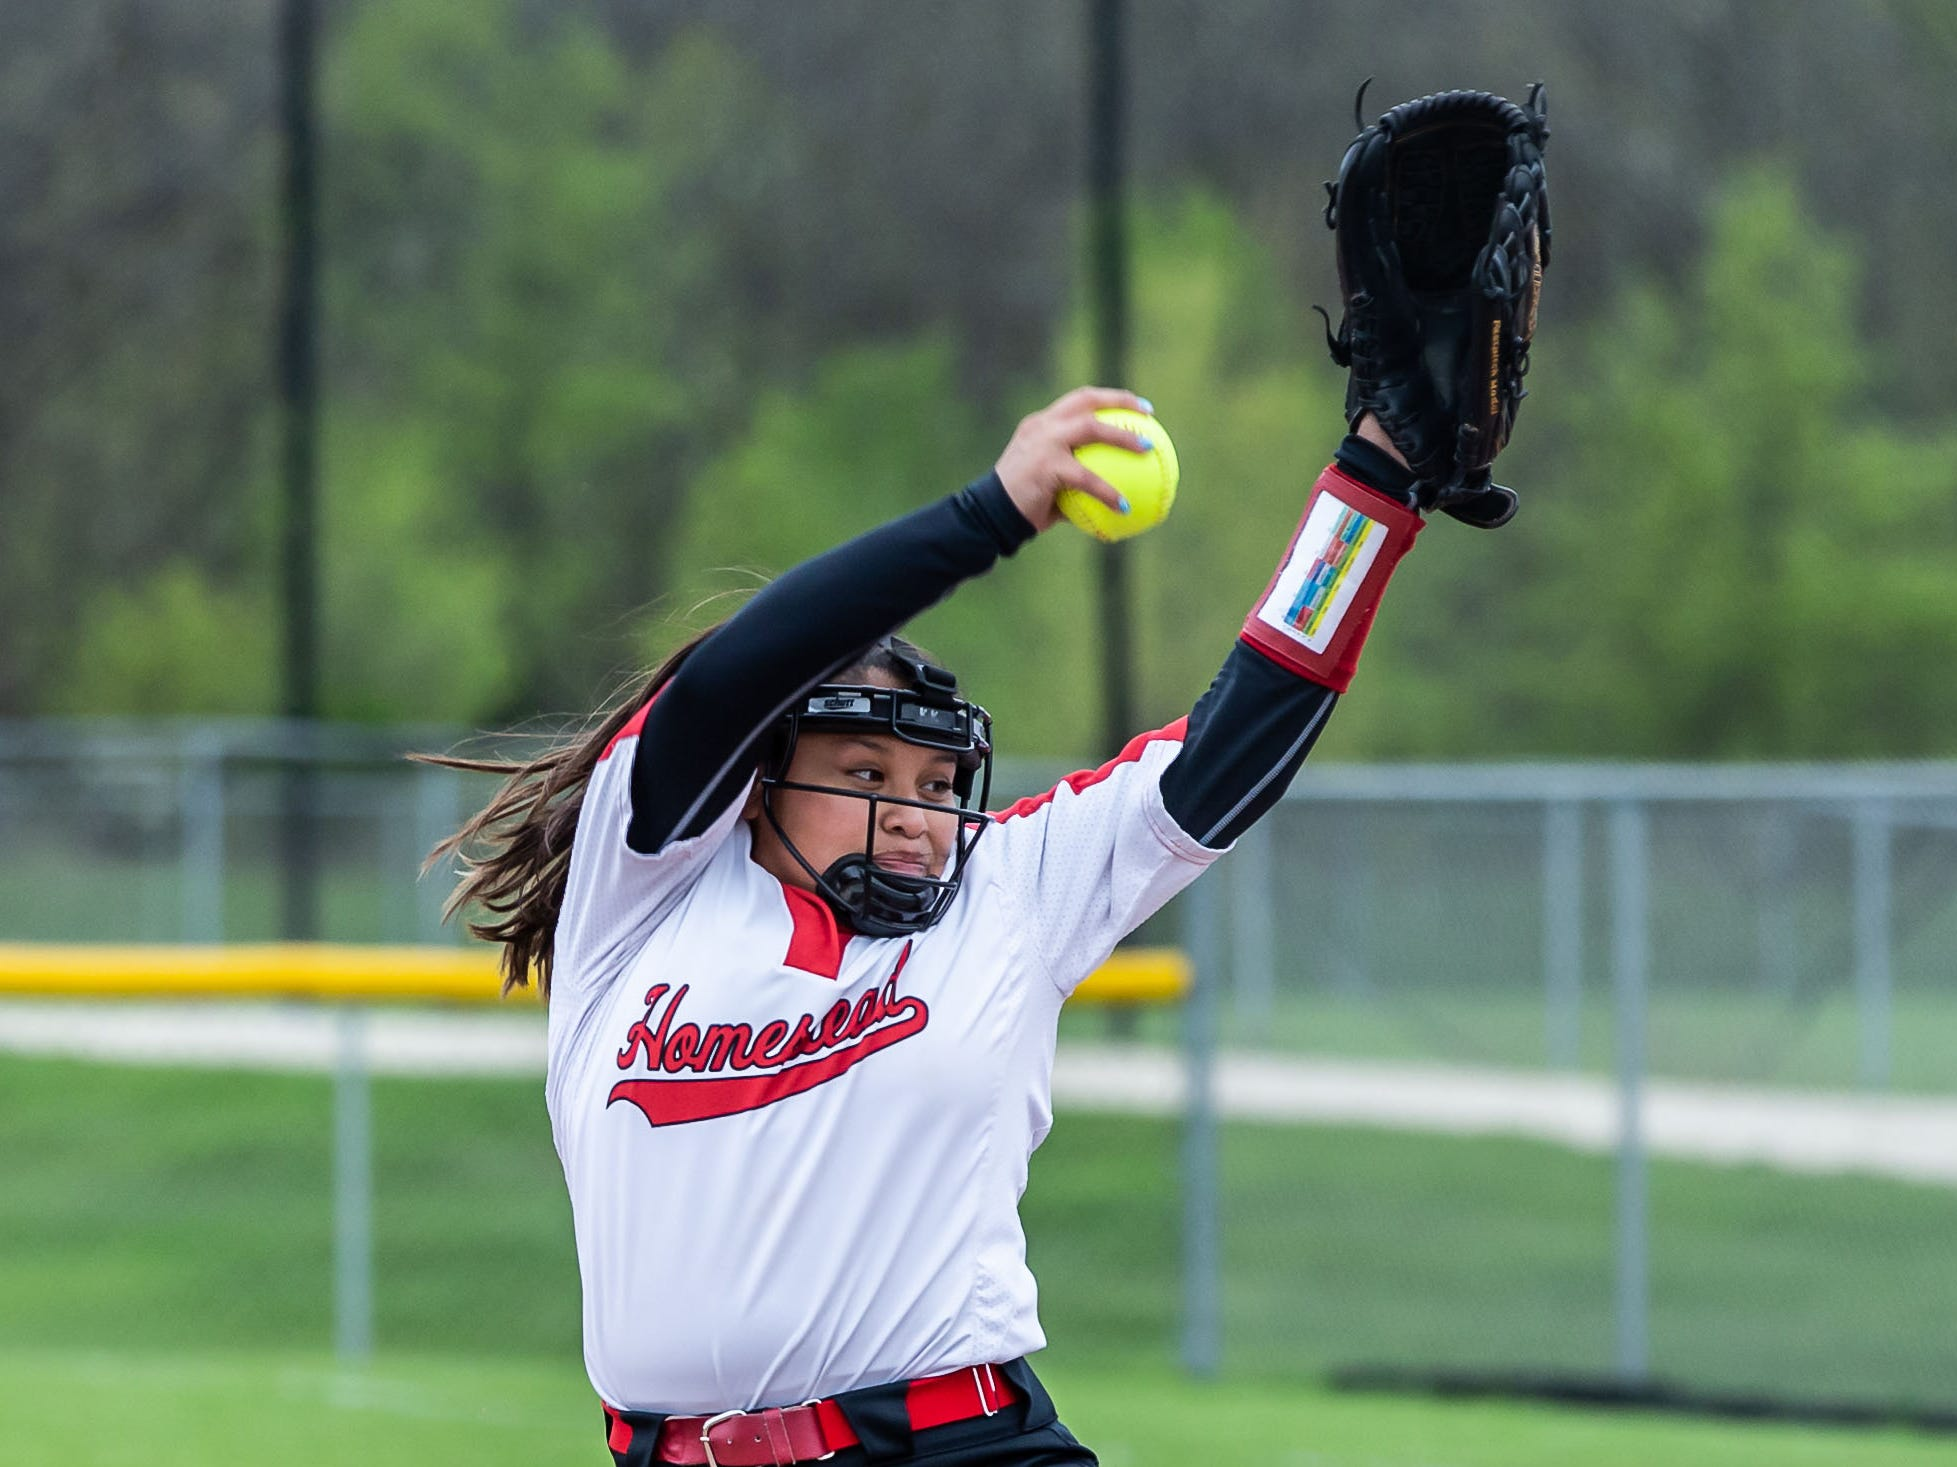 Homestead pitcher Katherine Schoessow (15) winds up during the regional game at home against Brookfield Central on Tuesday, May 21, 2019.